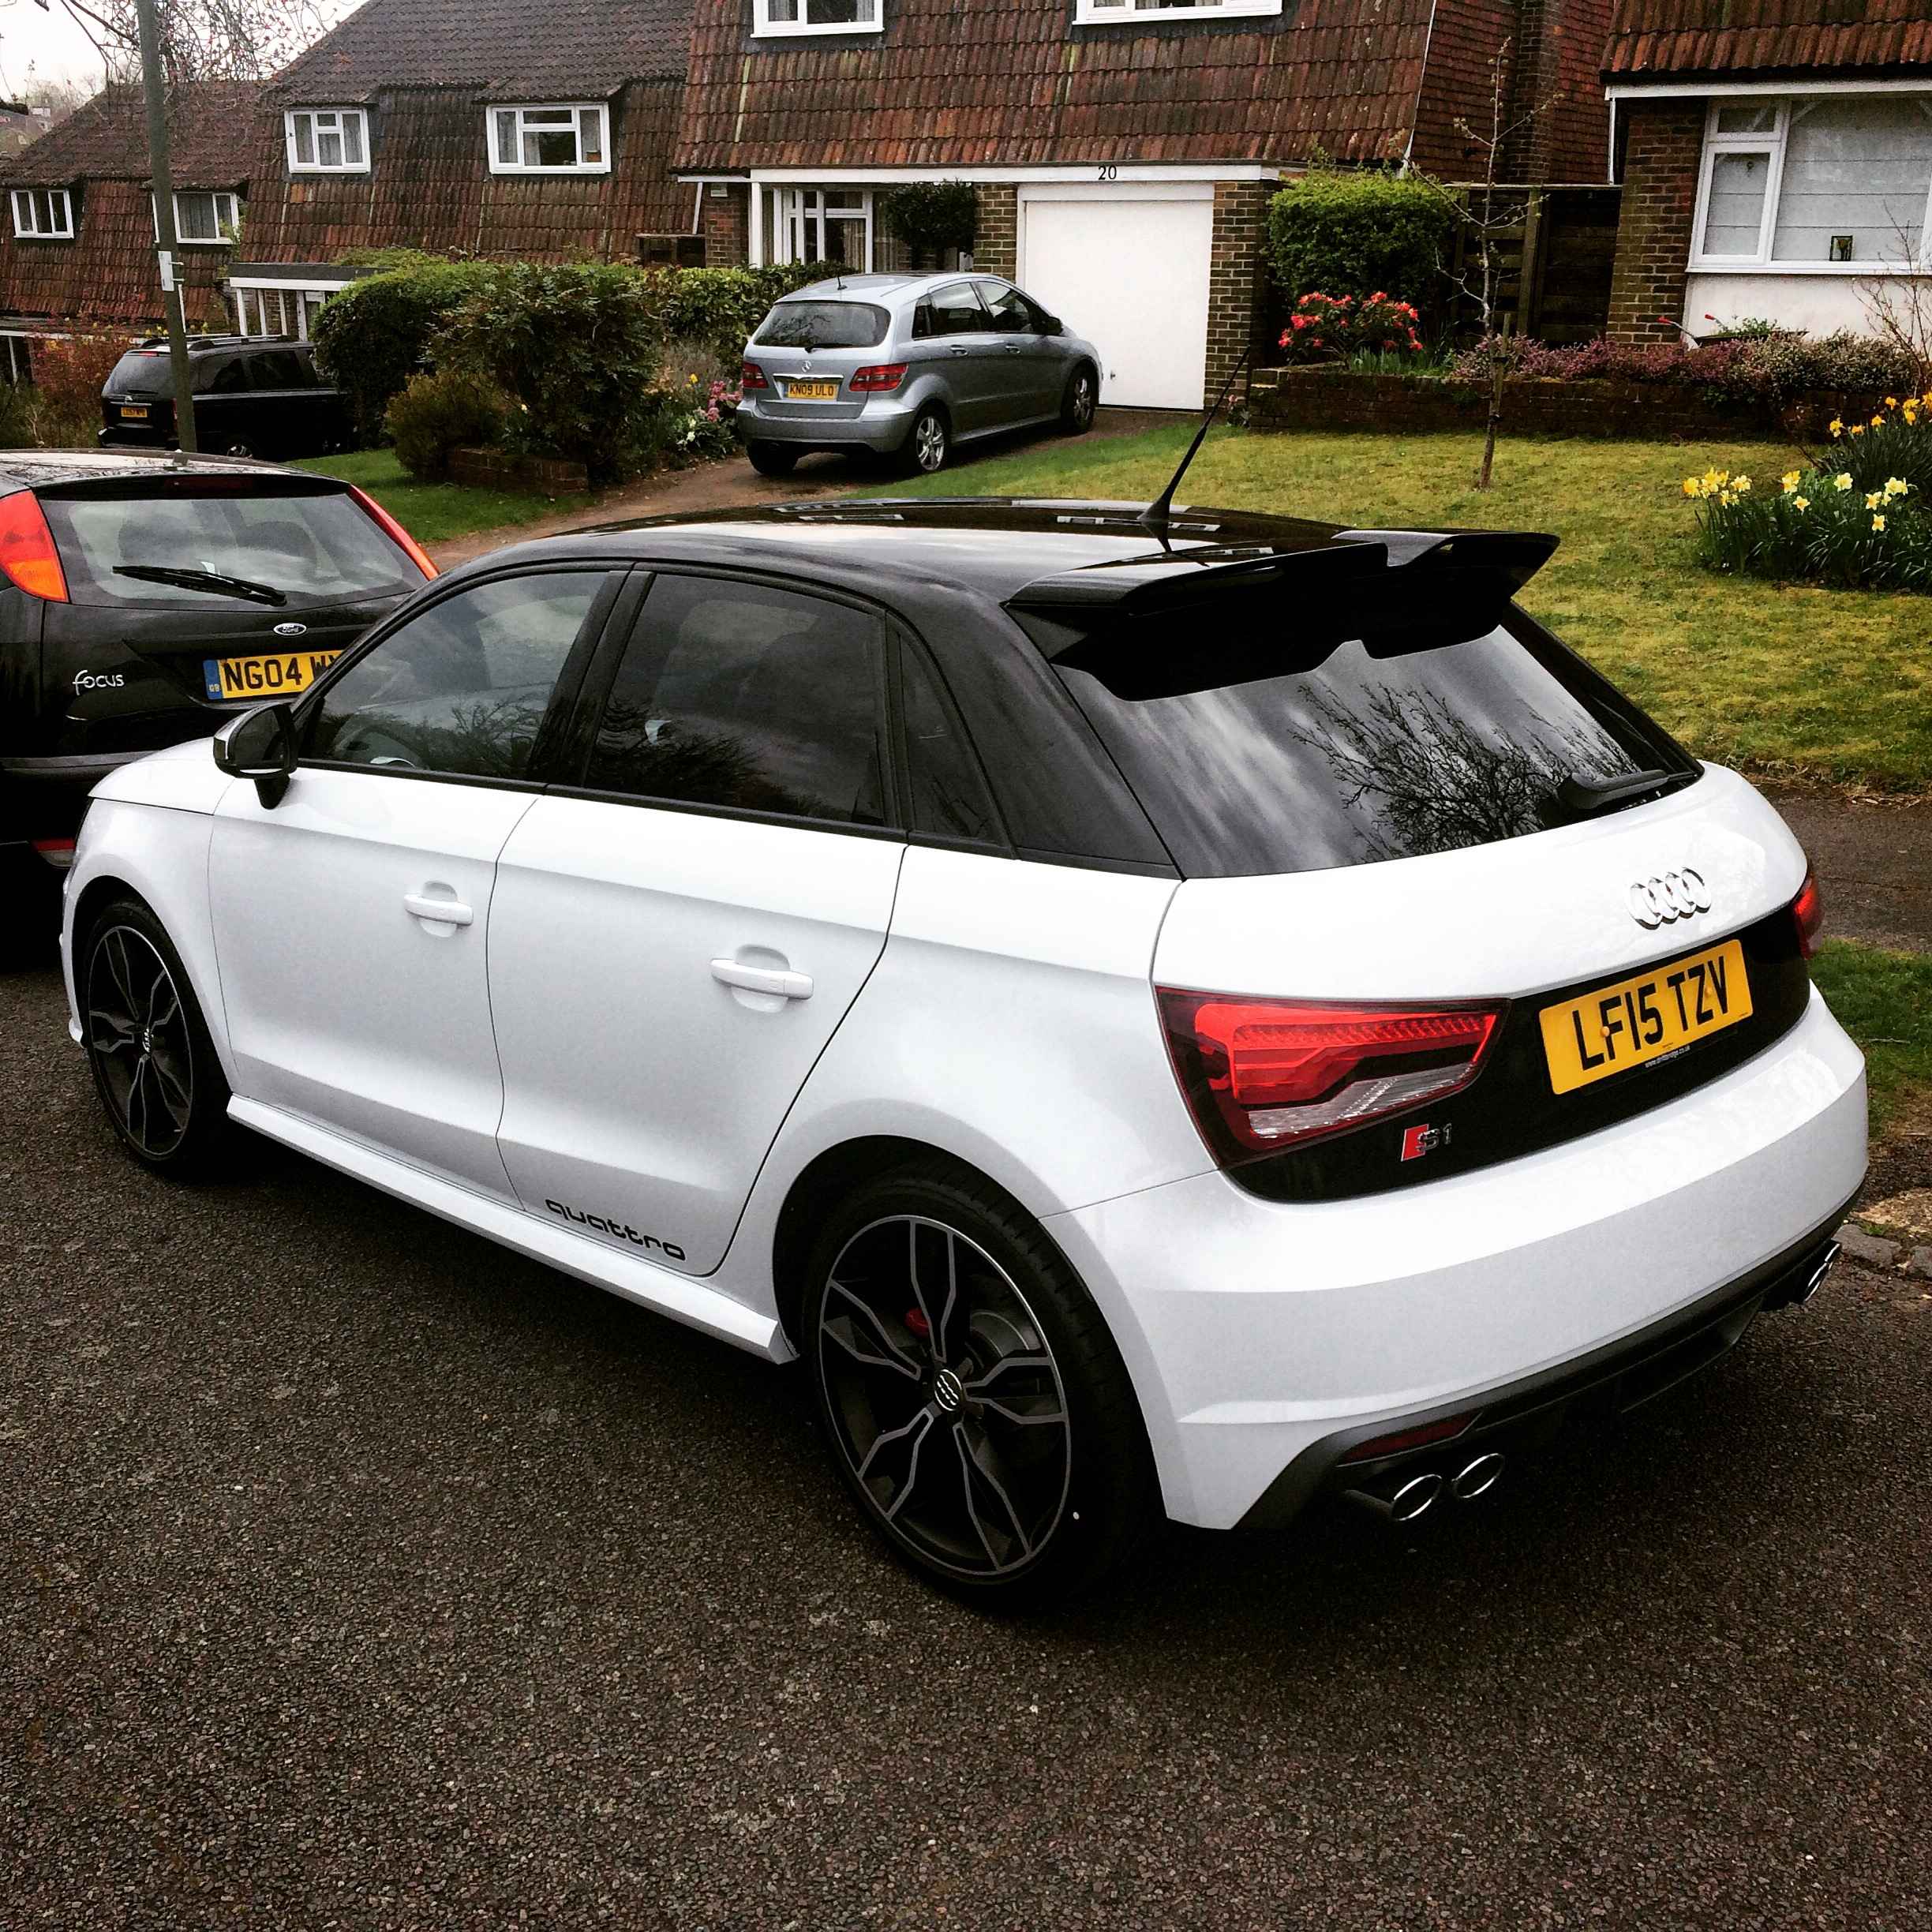 This Is What Life Is Like With An Audi Sport Quattro In: Post Pics Of Your S1's In Here